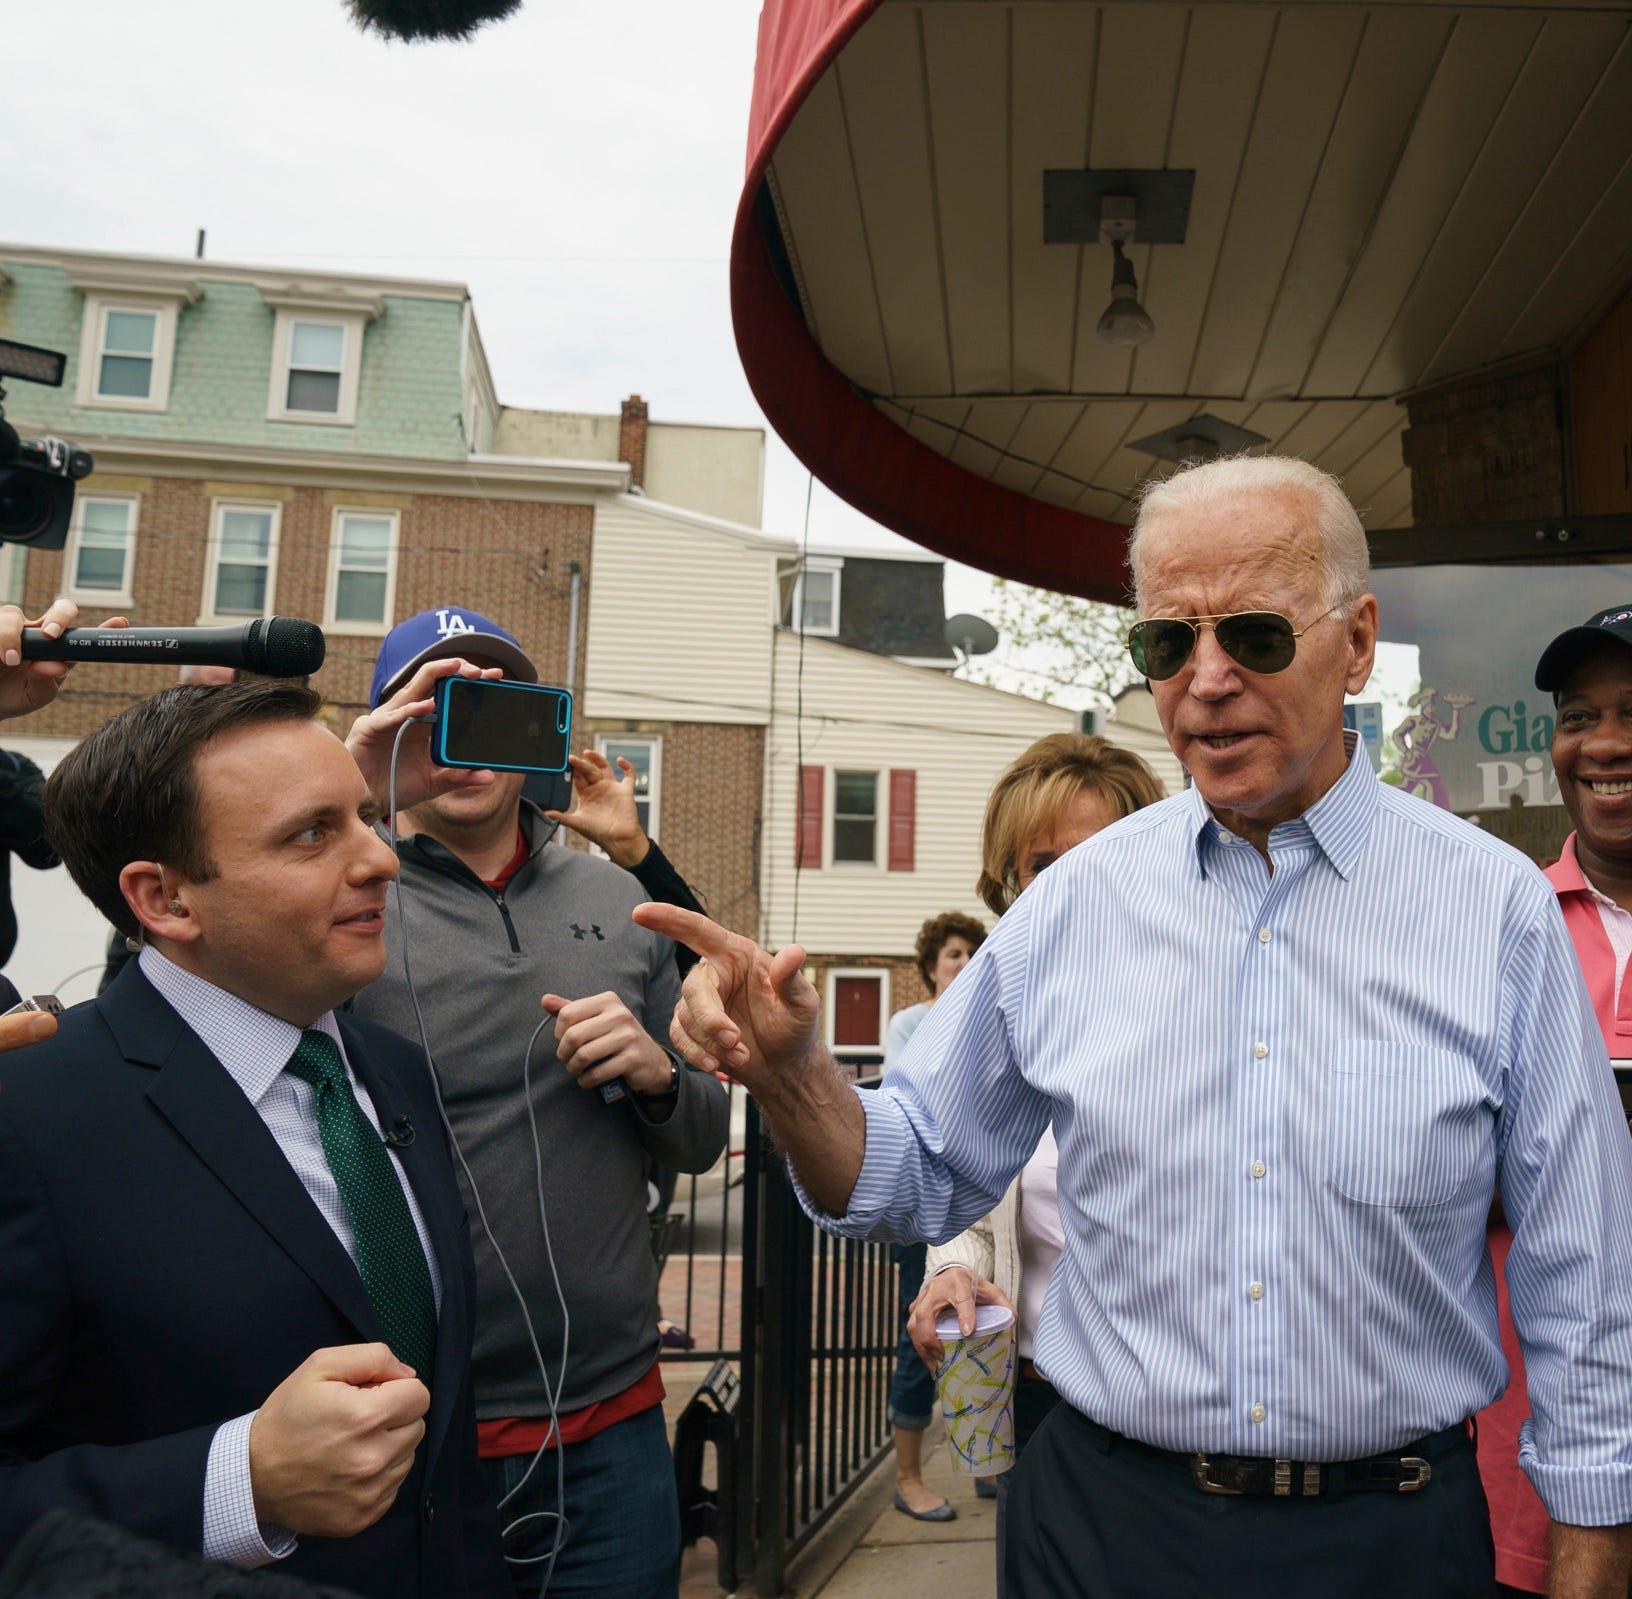 Candidate Tracker: Joe Biden comes to Iowa City Wednesday